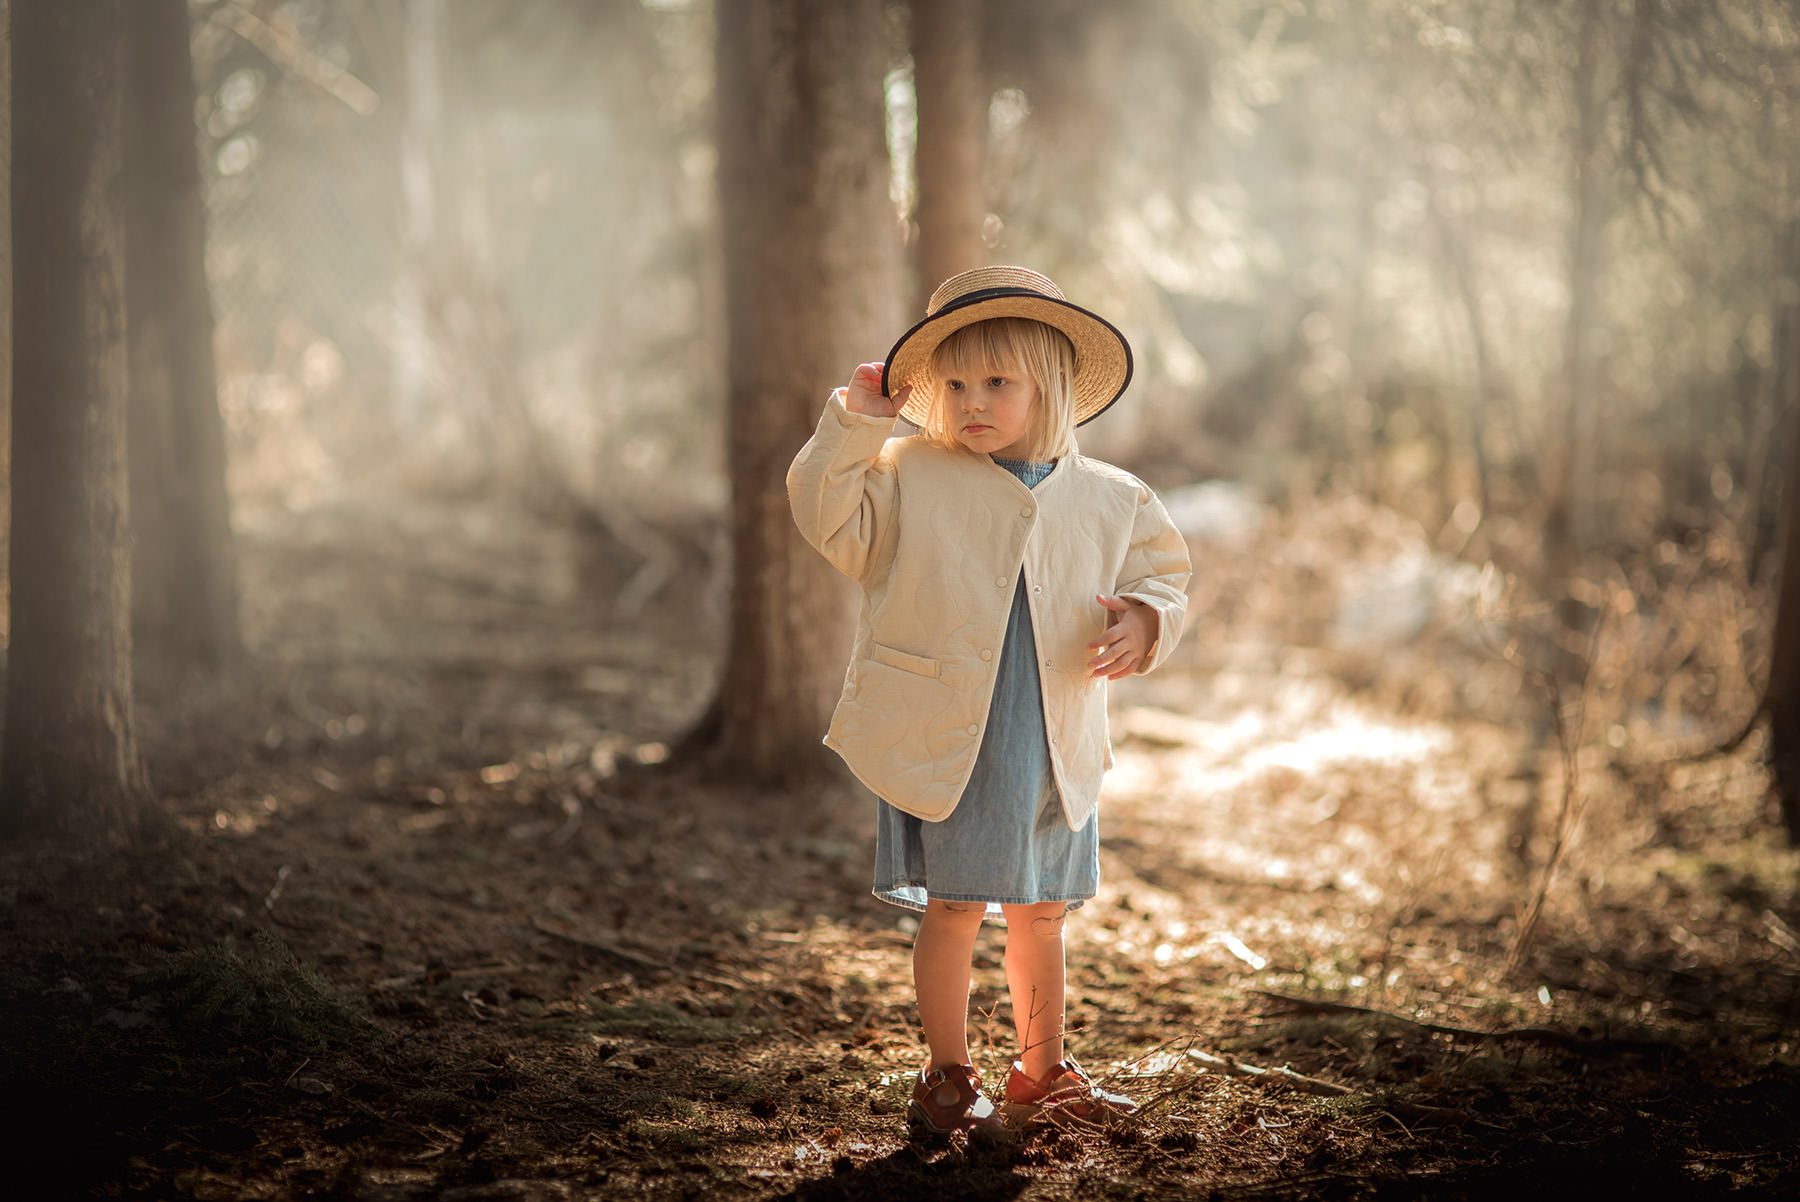 A little girl is standing in a forest.